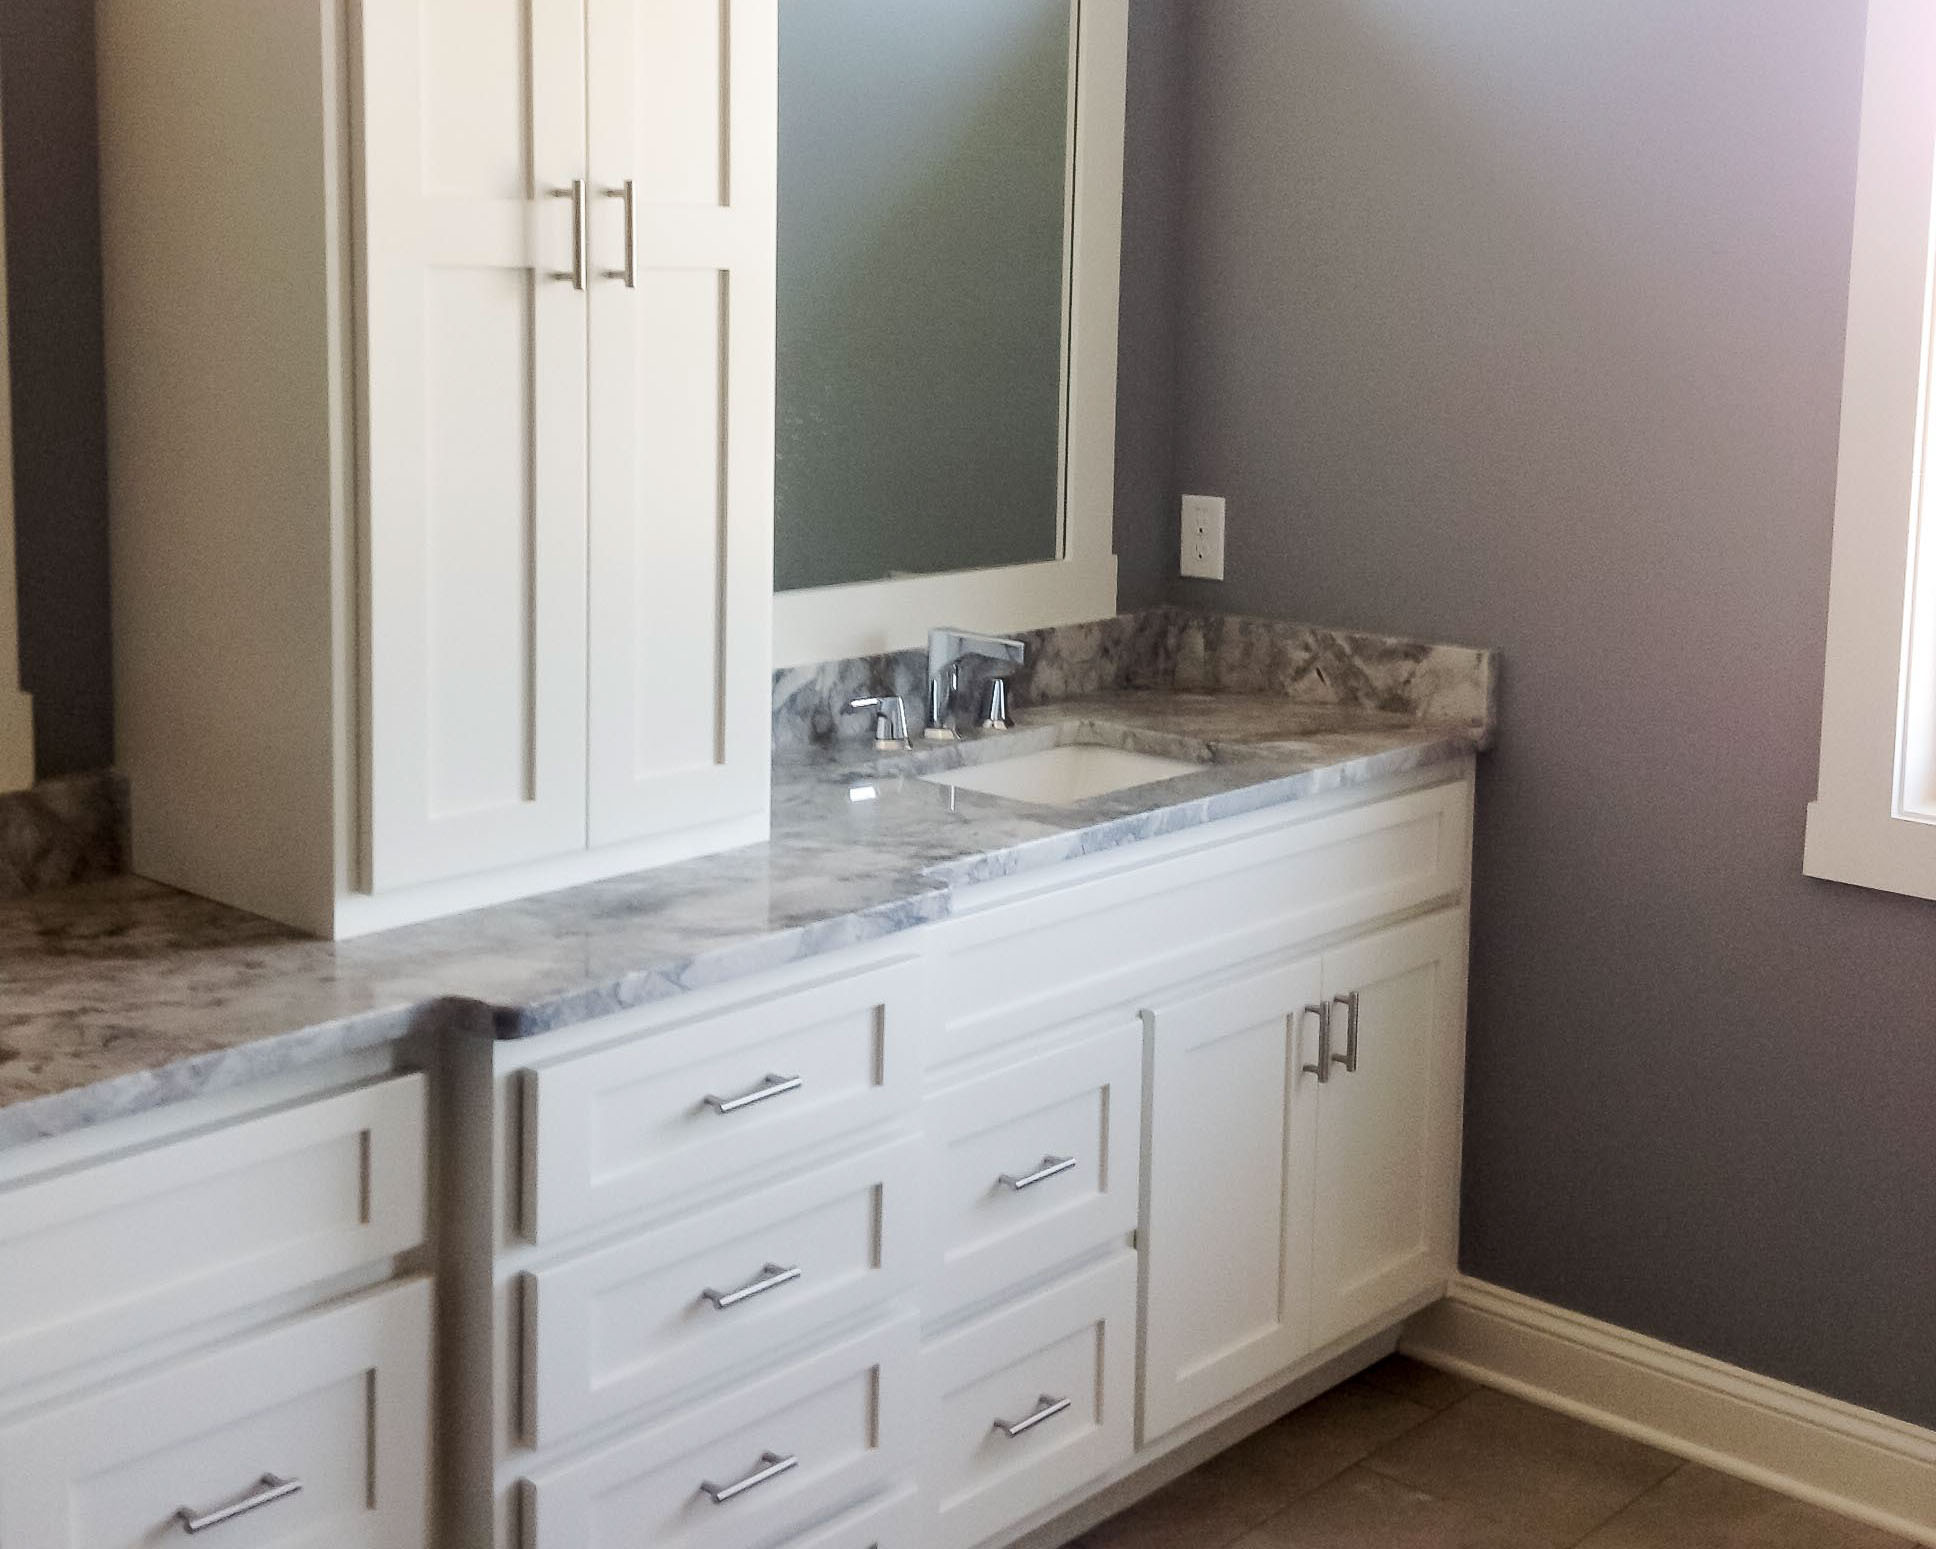 bathroom cabinetry in luxury beach home